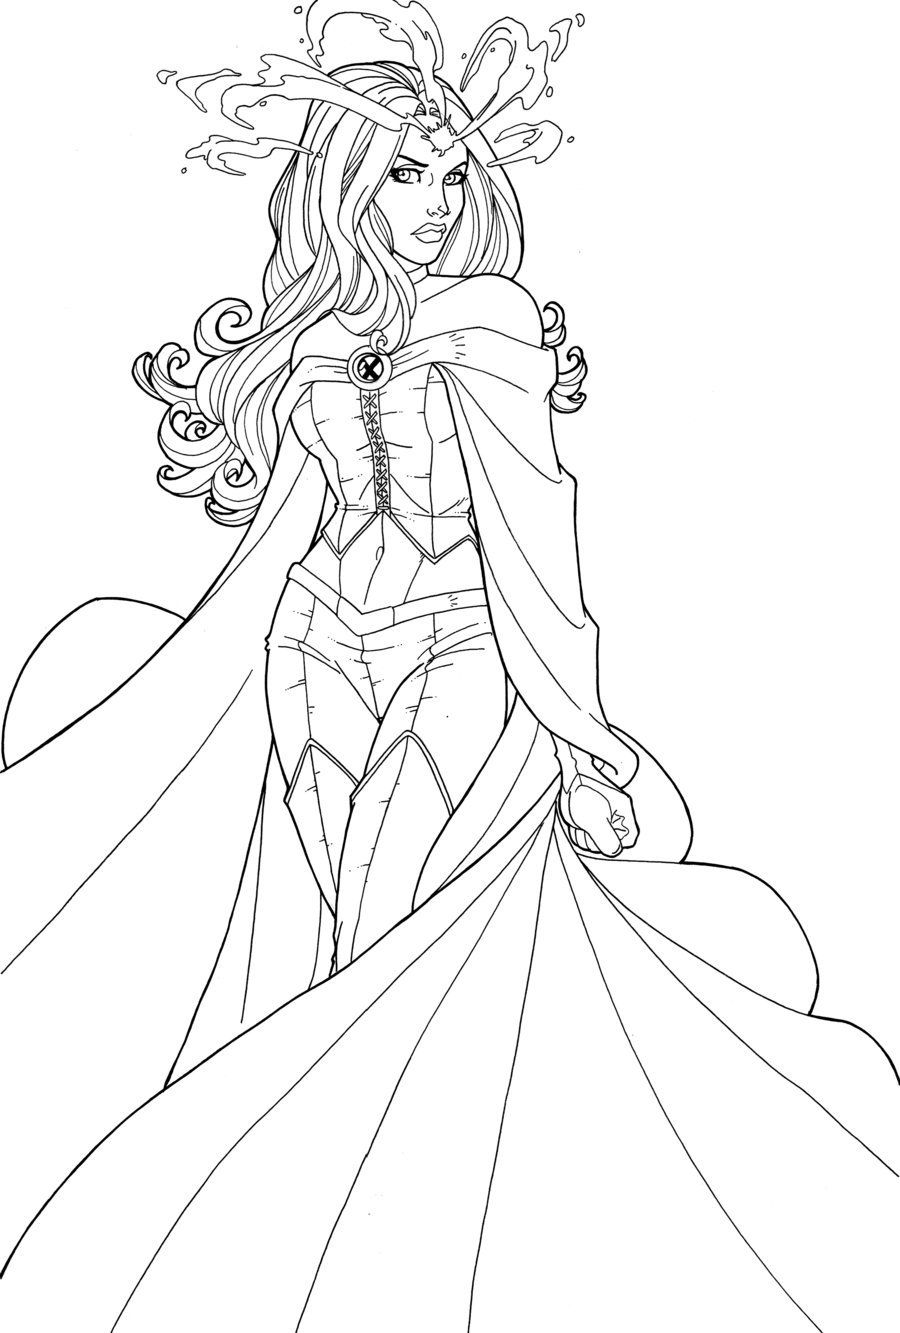 I Was Commissioned Awhile Back To Draw Emmafrost In Her New Costume